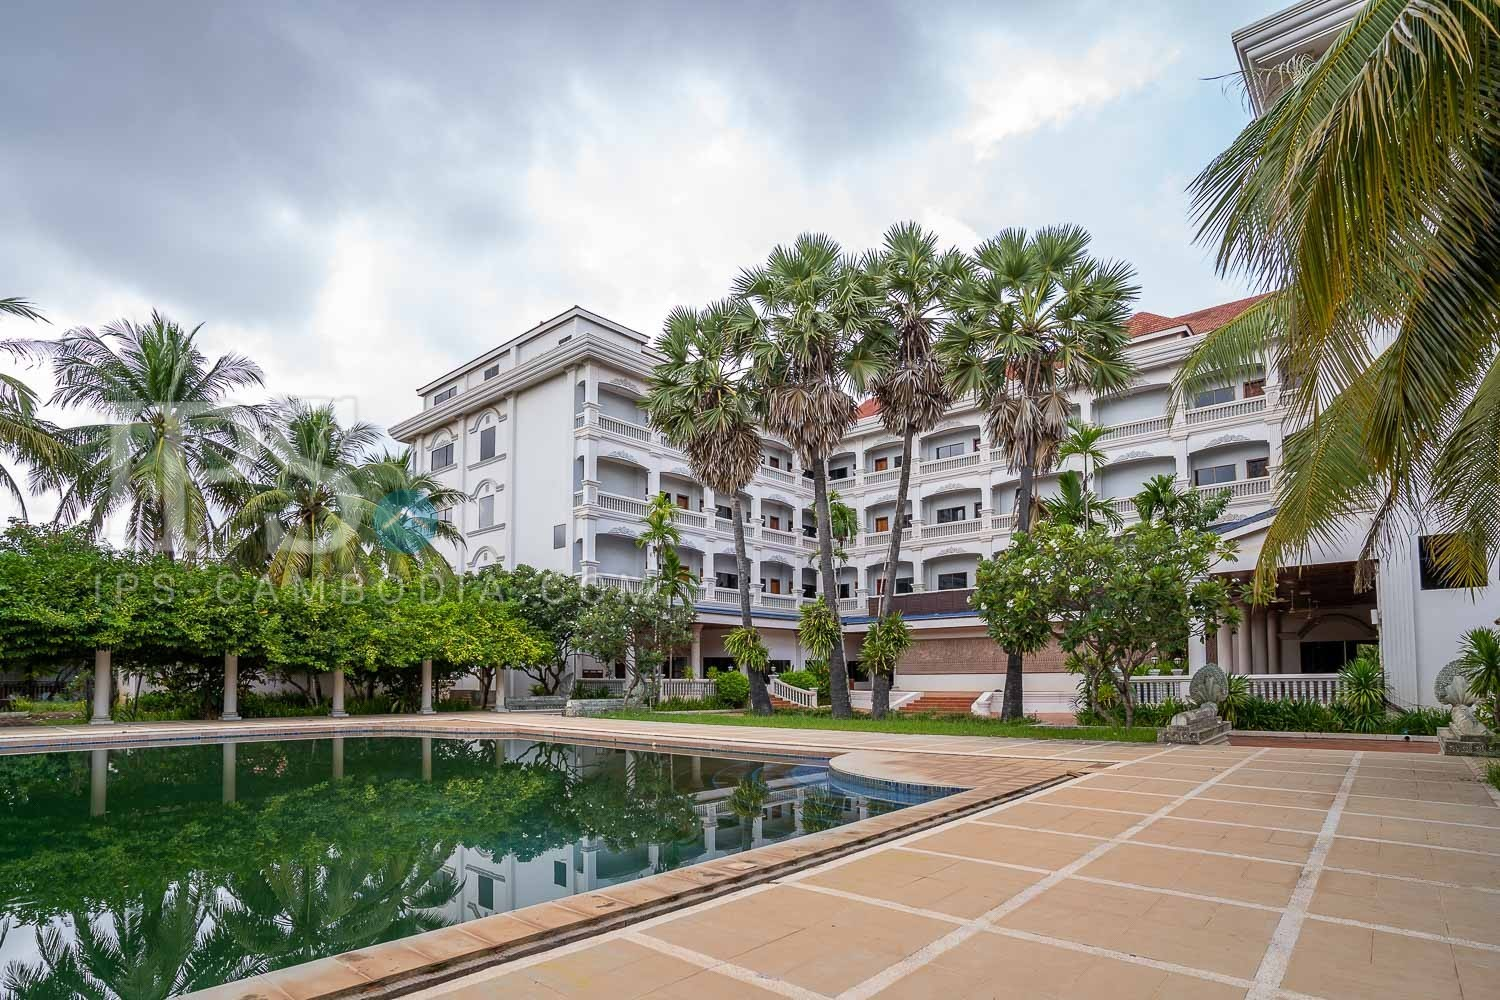 140 Bedroom Hotel For Sale - Svay Dangkum, Siem Reap